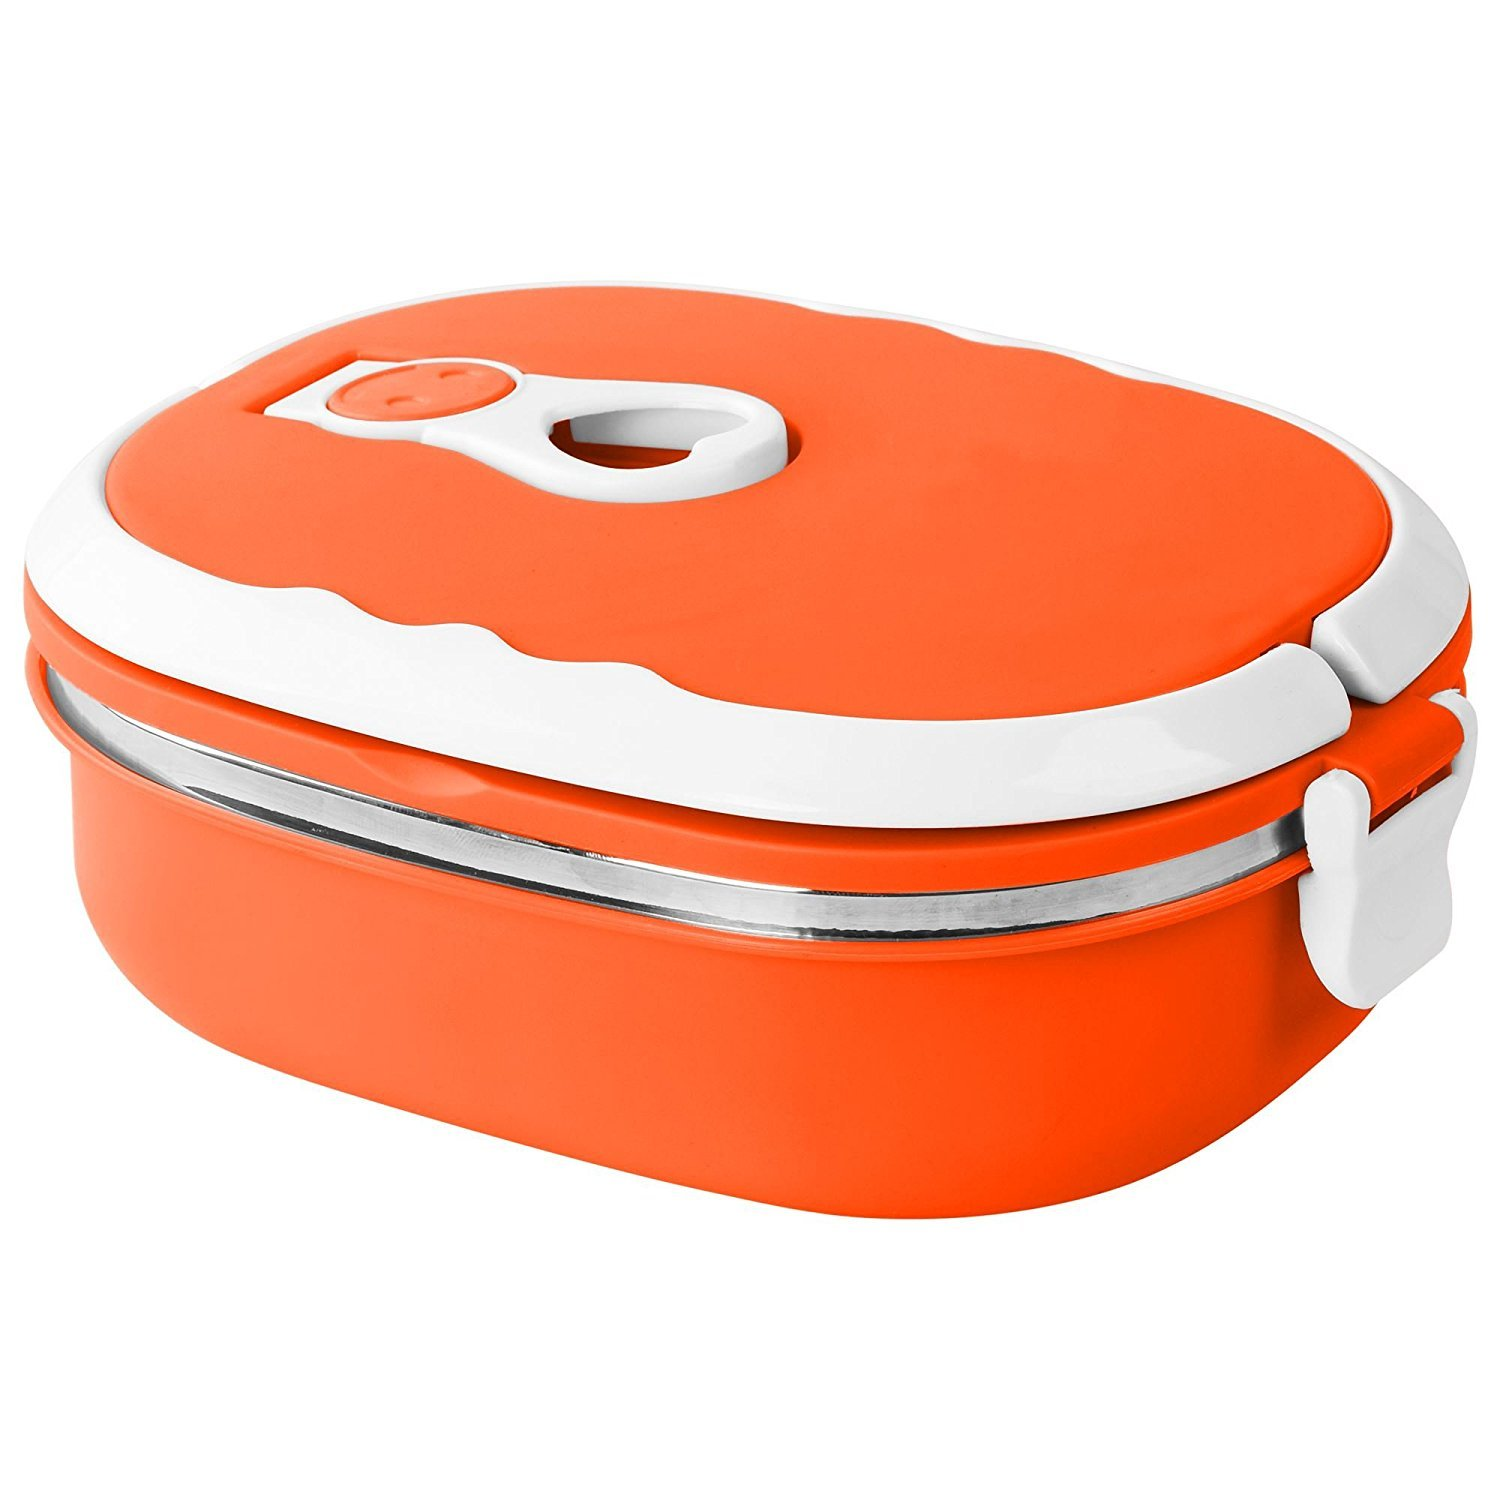 Blue Stacking Stainless Steel Airtight Vacuum Seal Thermal Insulated Portable One Or Two Layer Tier Tiffin Lunch Box Food Container (1 Layer, Blue) GonZalo GraCia